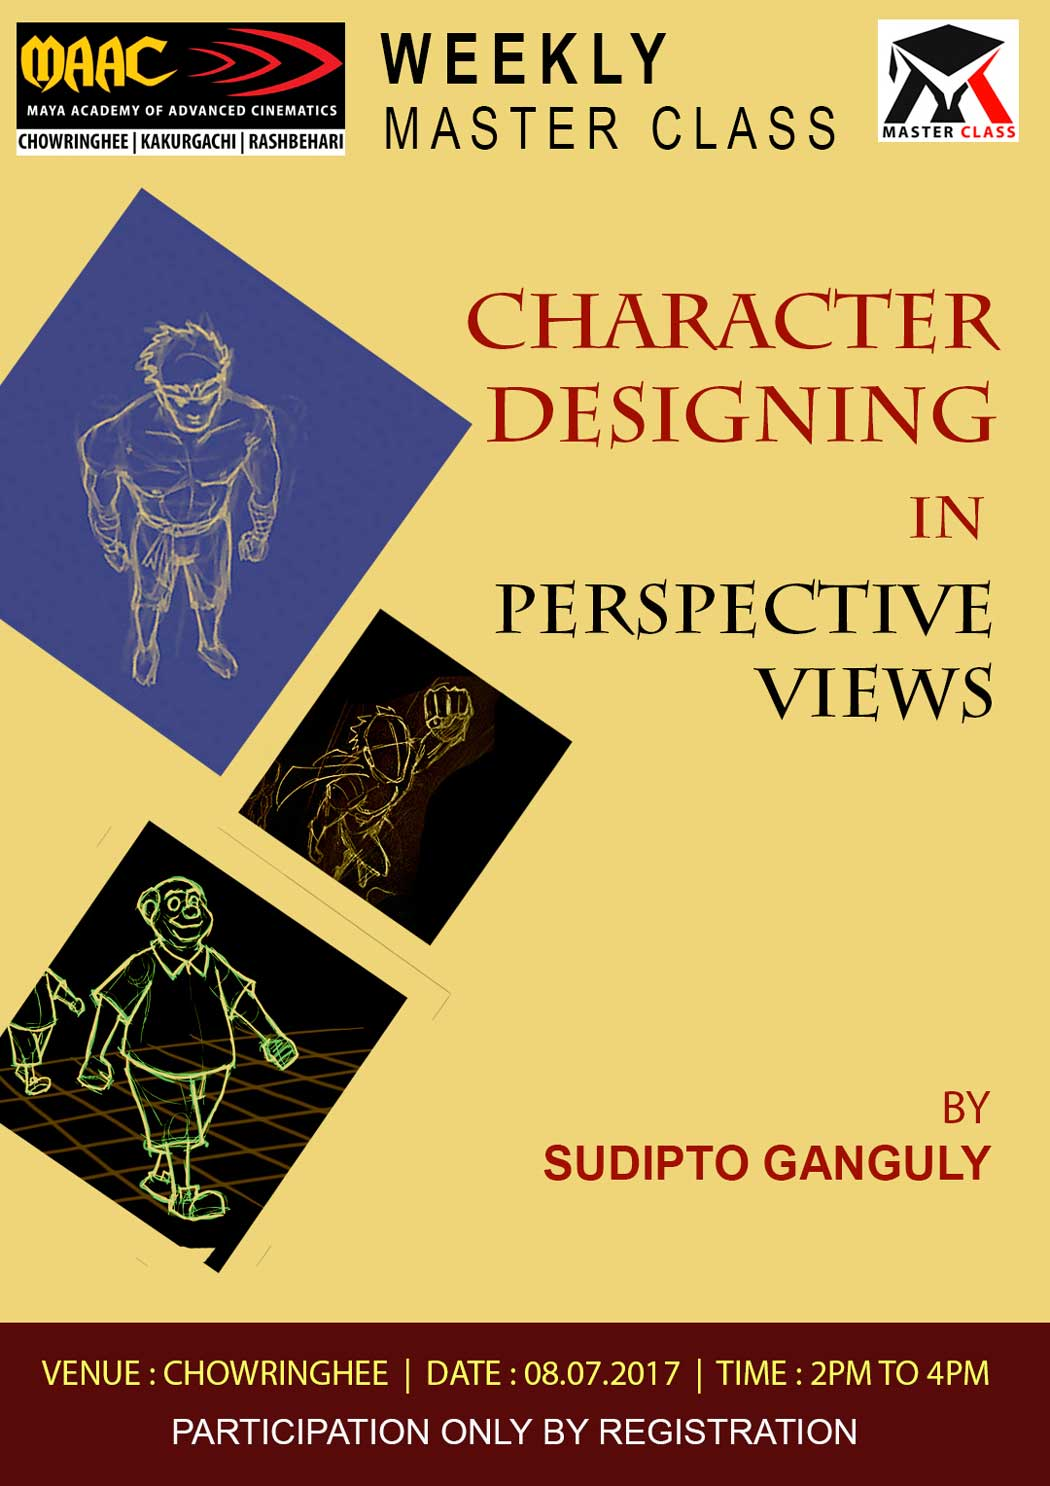 Weekly Master Class on Character Designing in Perspective Views - Sudipta Ganguly